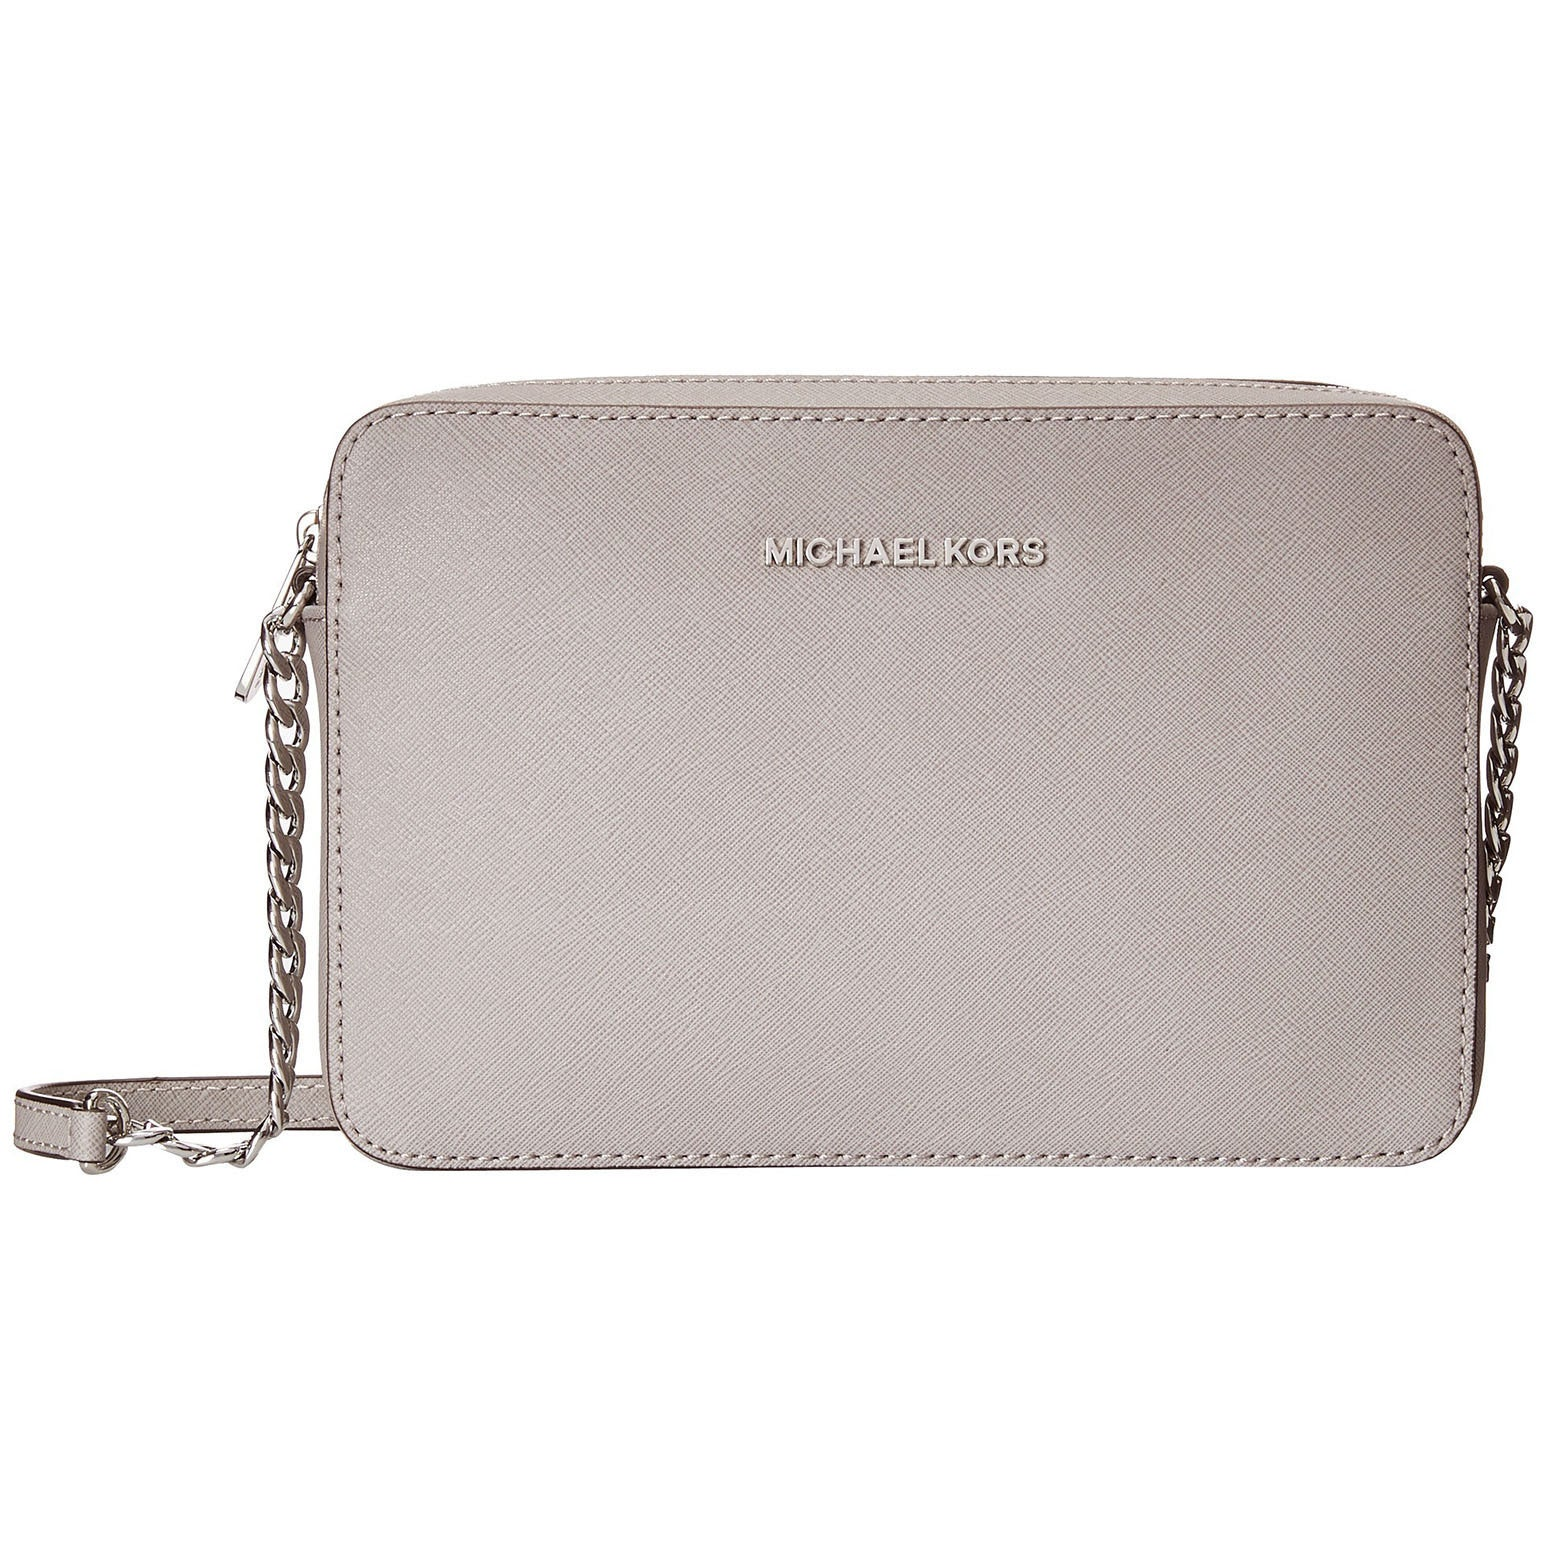 5fa1784ae49a82 ... low cost shop michael kors jet set large crossbody pearl grey handbag  free shipping today overstock